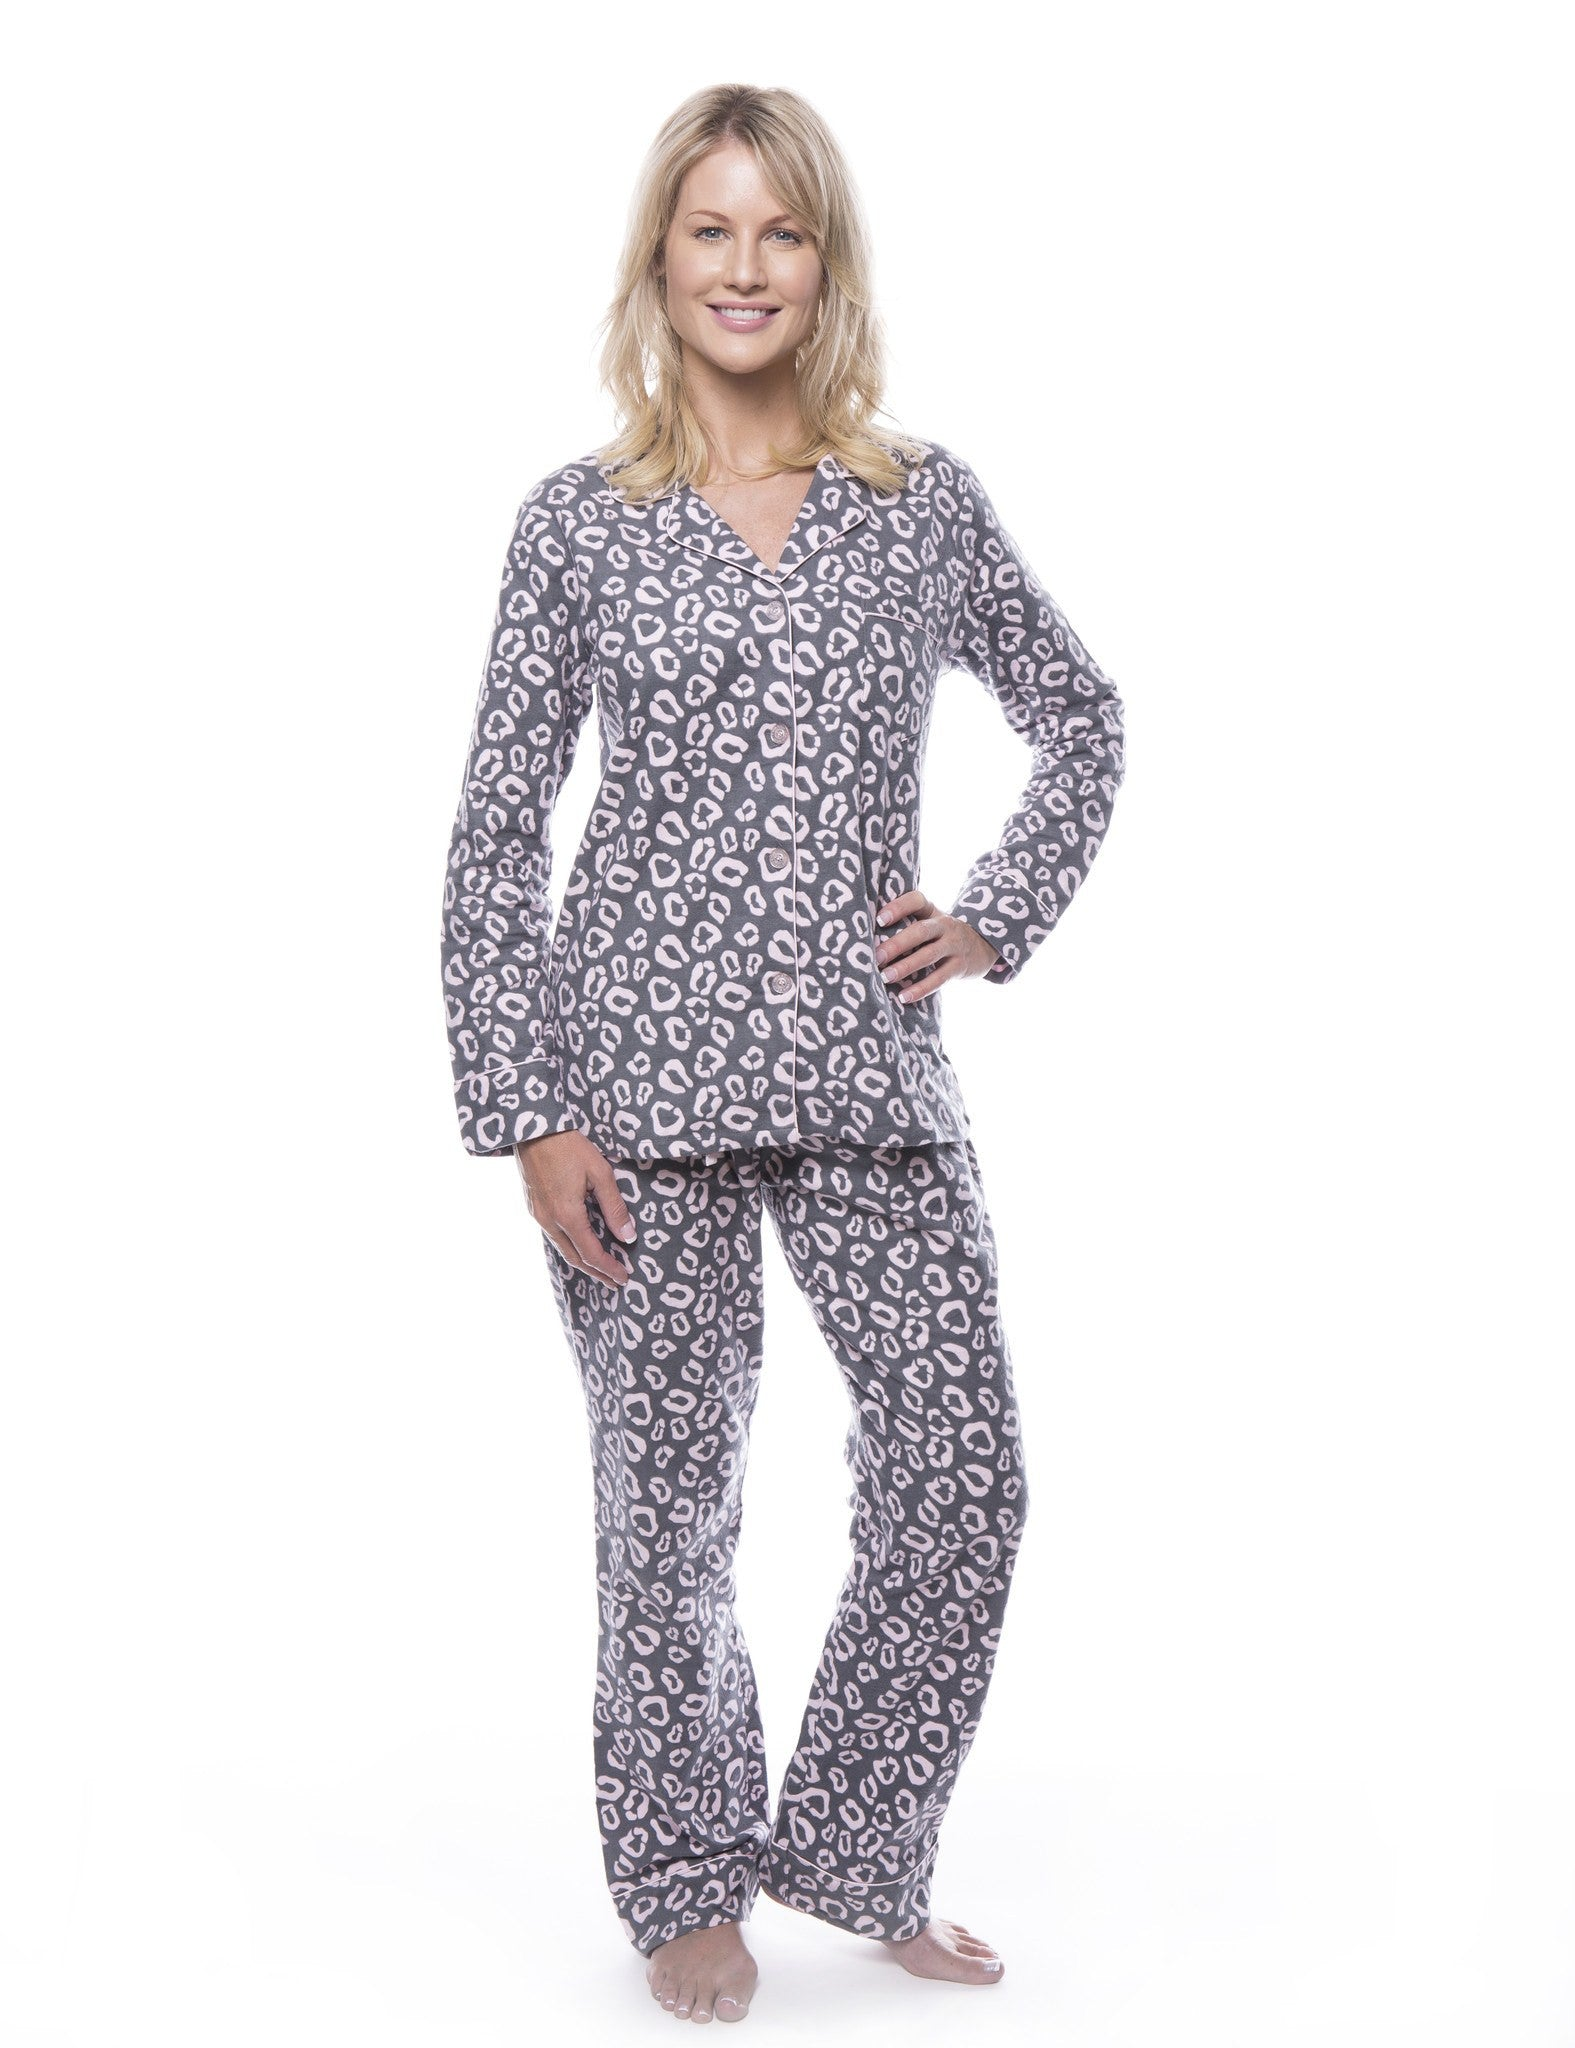 Enjoy free shipping and easy returns every day at Kohl's. Find great deals on Womens Pajama Sets at Kohl's today!